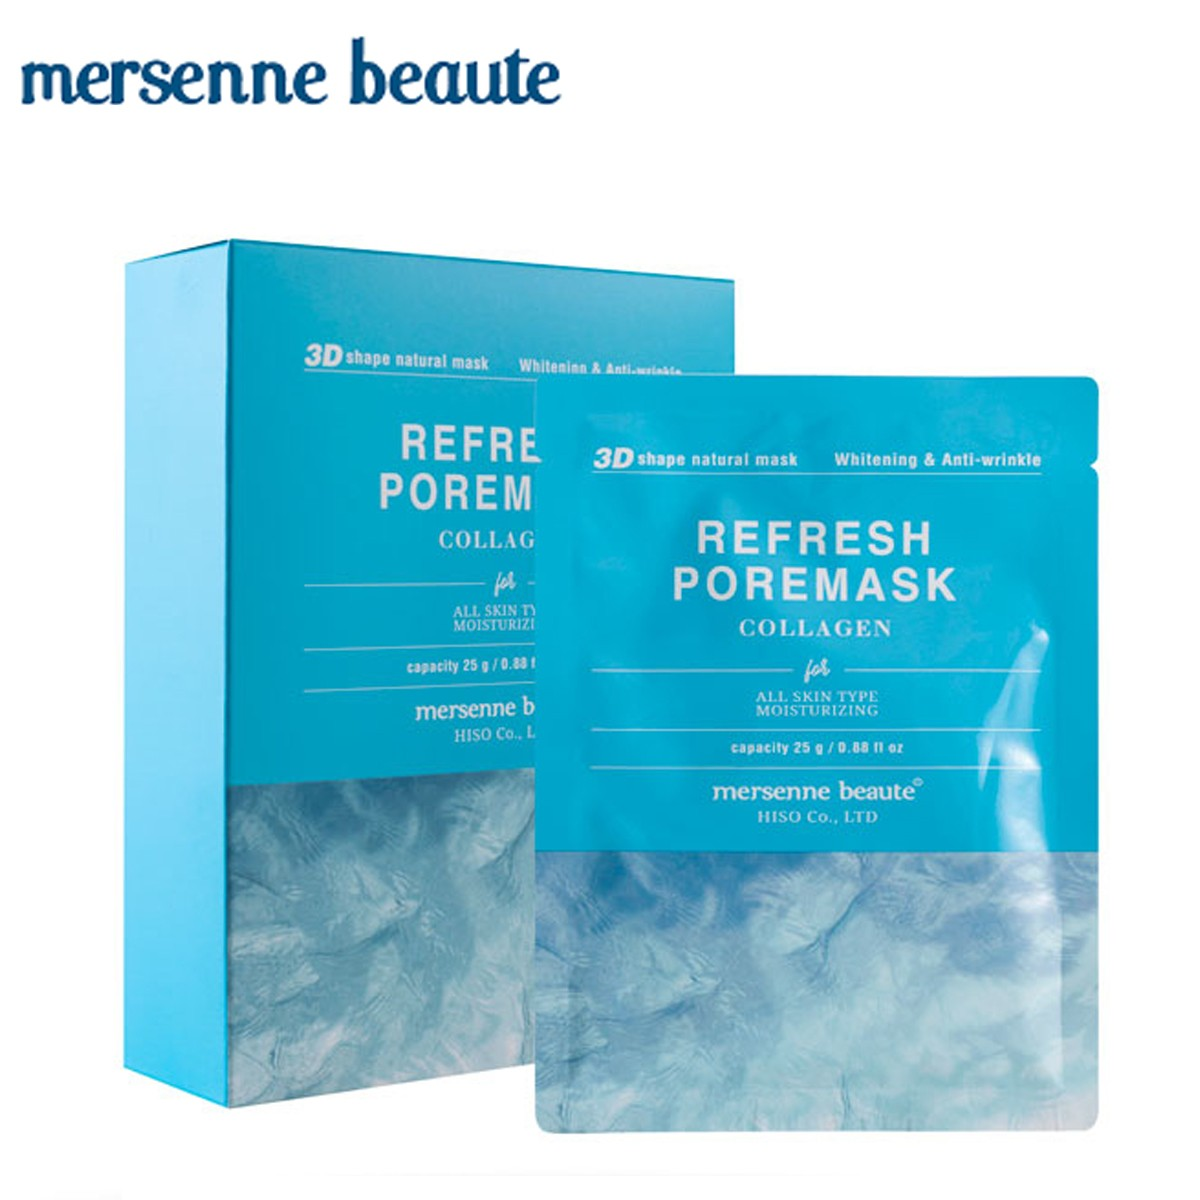 HỘP 10 MIẾNG MẶT NẠ TINH CHẤT COLLAGEN REFRESH PORE MASK MERSENNE BEAUTE